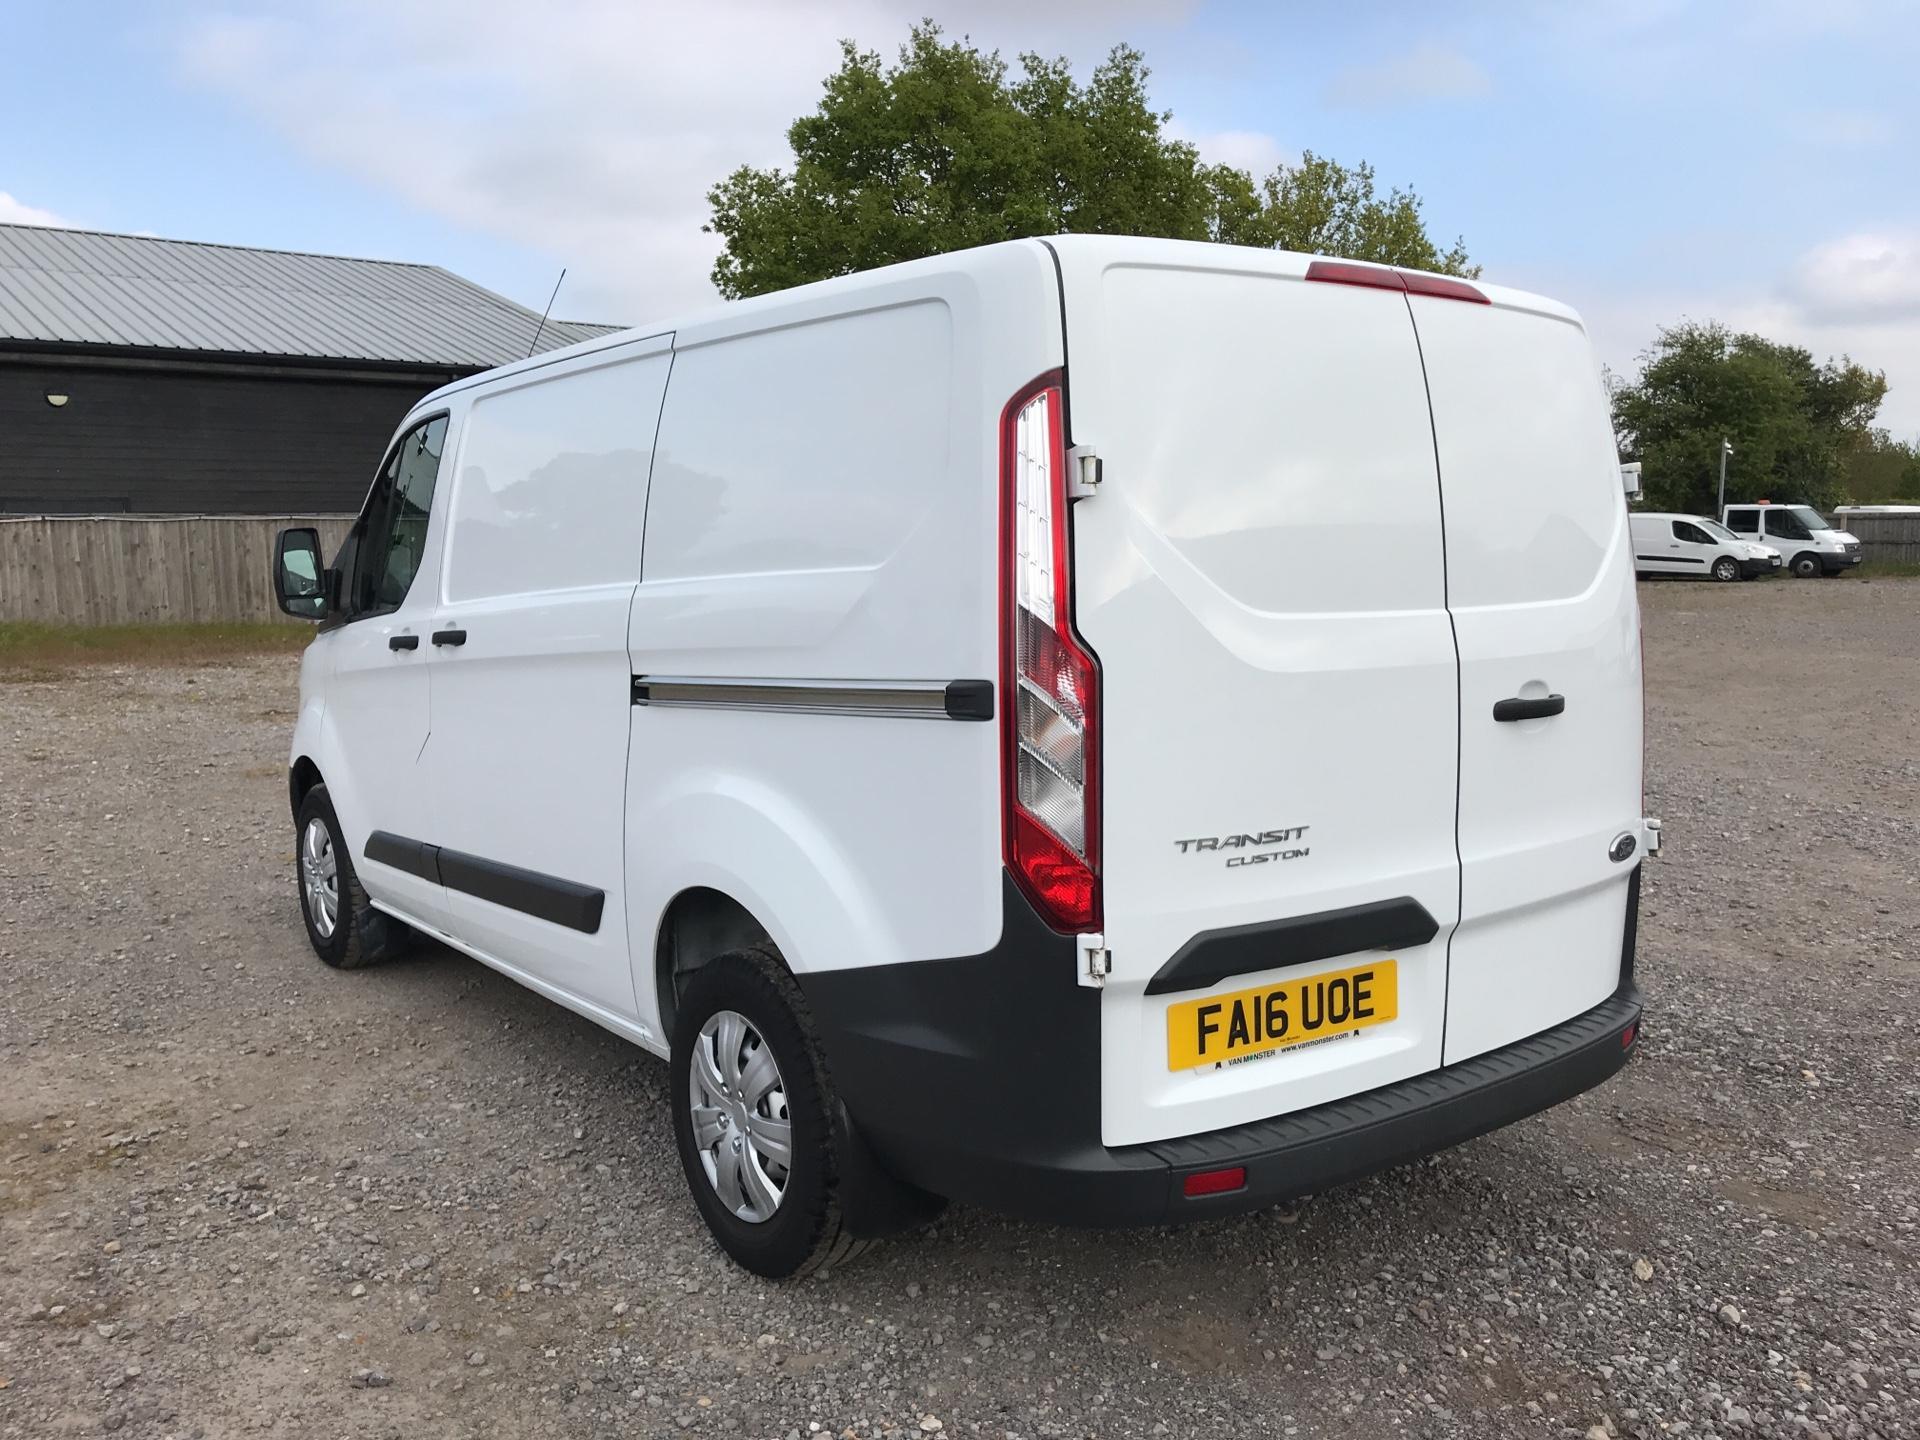 2016 Ford Transit Custom 290 L1 DIESEL FWD 2.2 TDCI 100PS LOW ROOF VAN EURO 5 (FA16UOE) Thumbnail 5